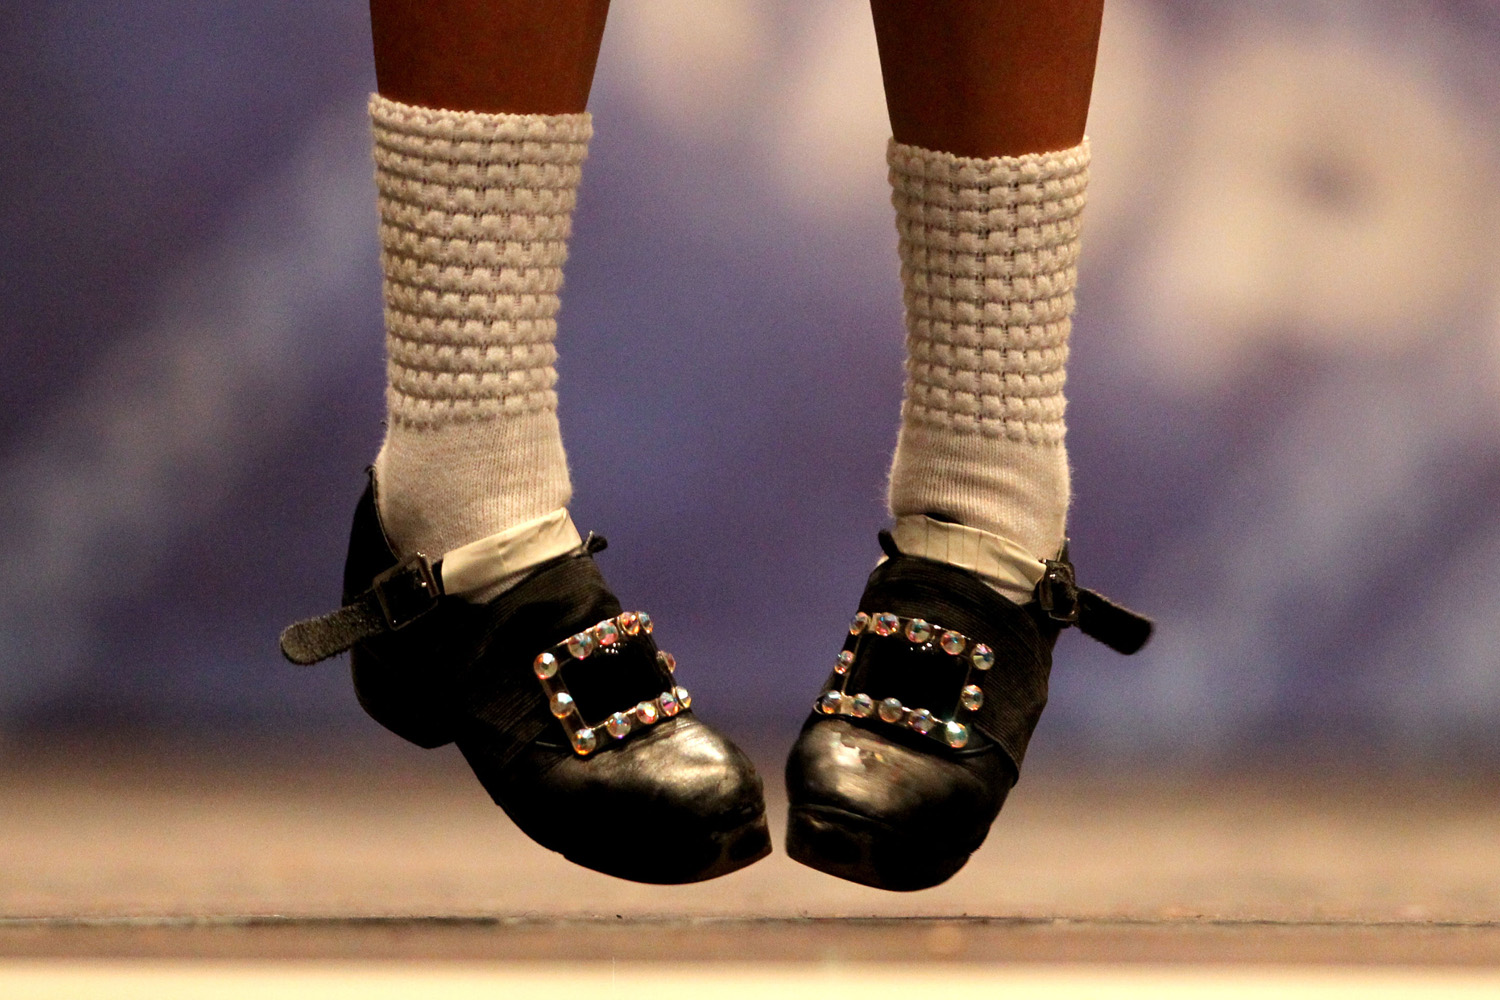 Feb. 25, 2013. A dancer performs in front of judges in one of the heats in the All Scotland Championships in Irish Dancing being held at the Royal Concert Hall in Glasgow.